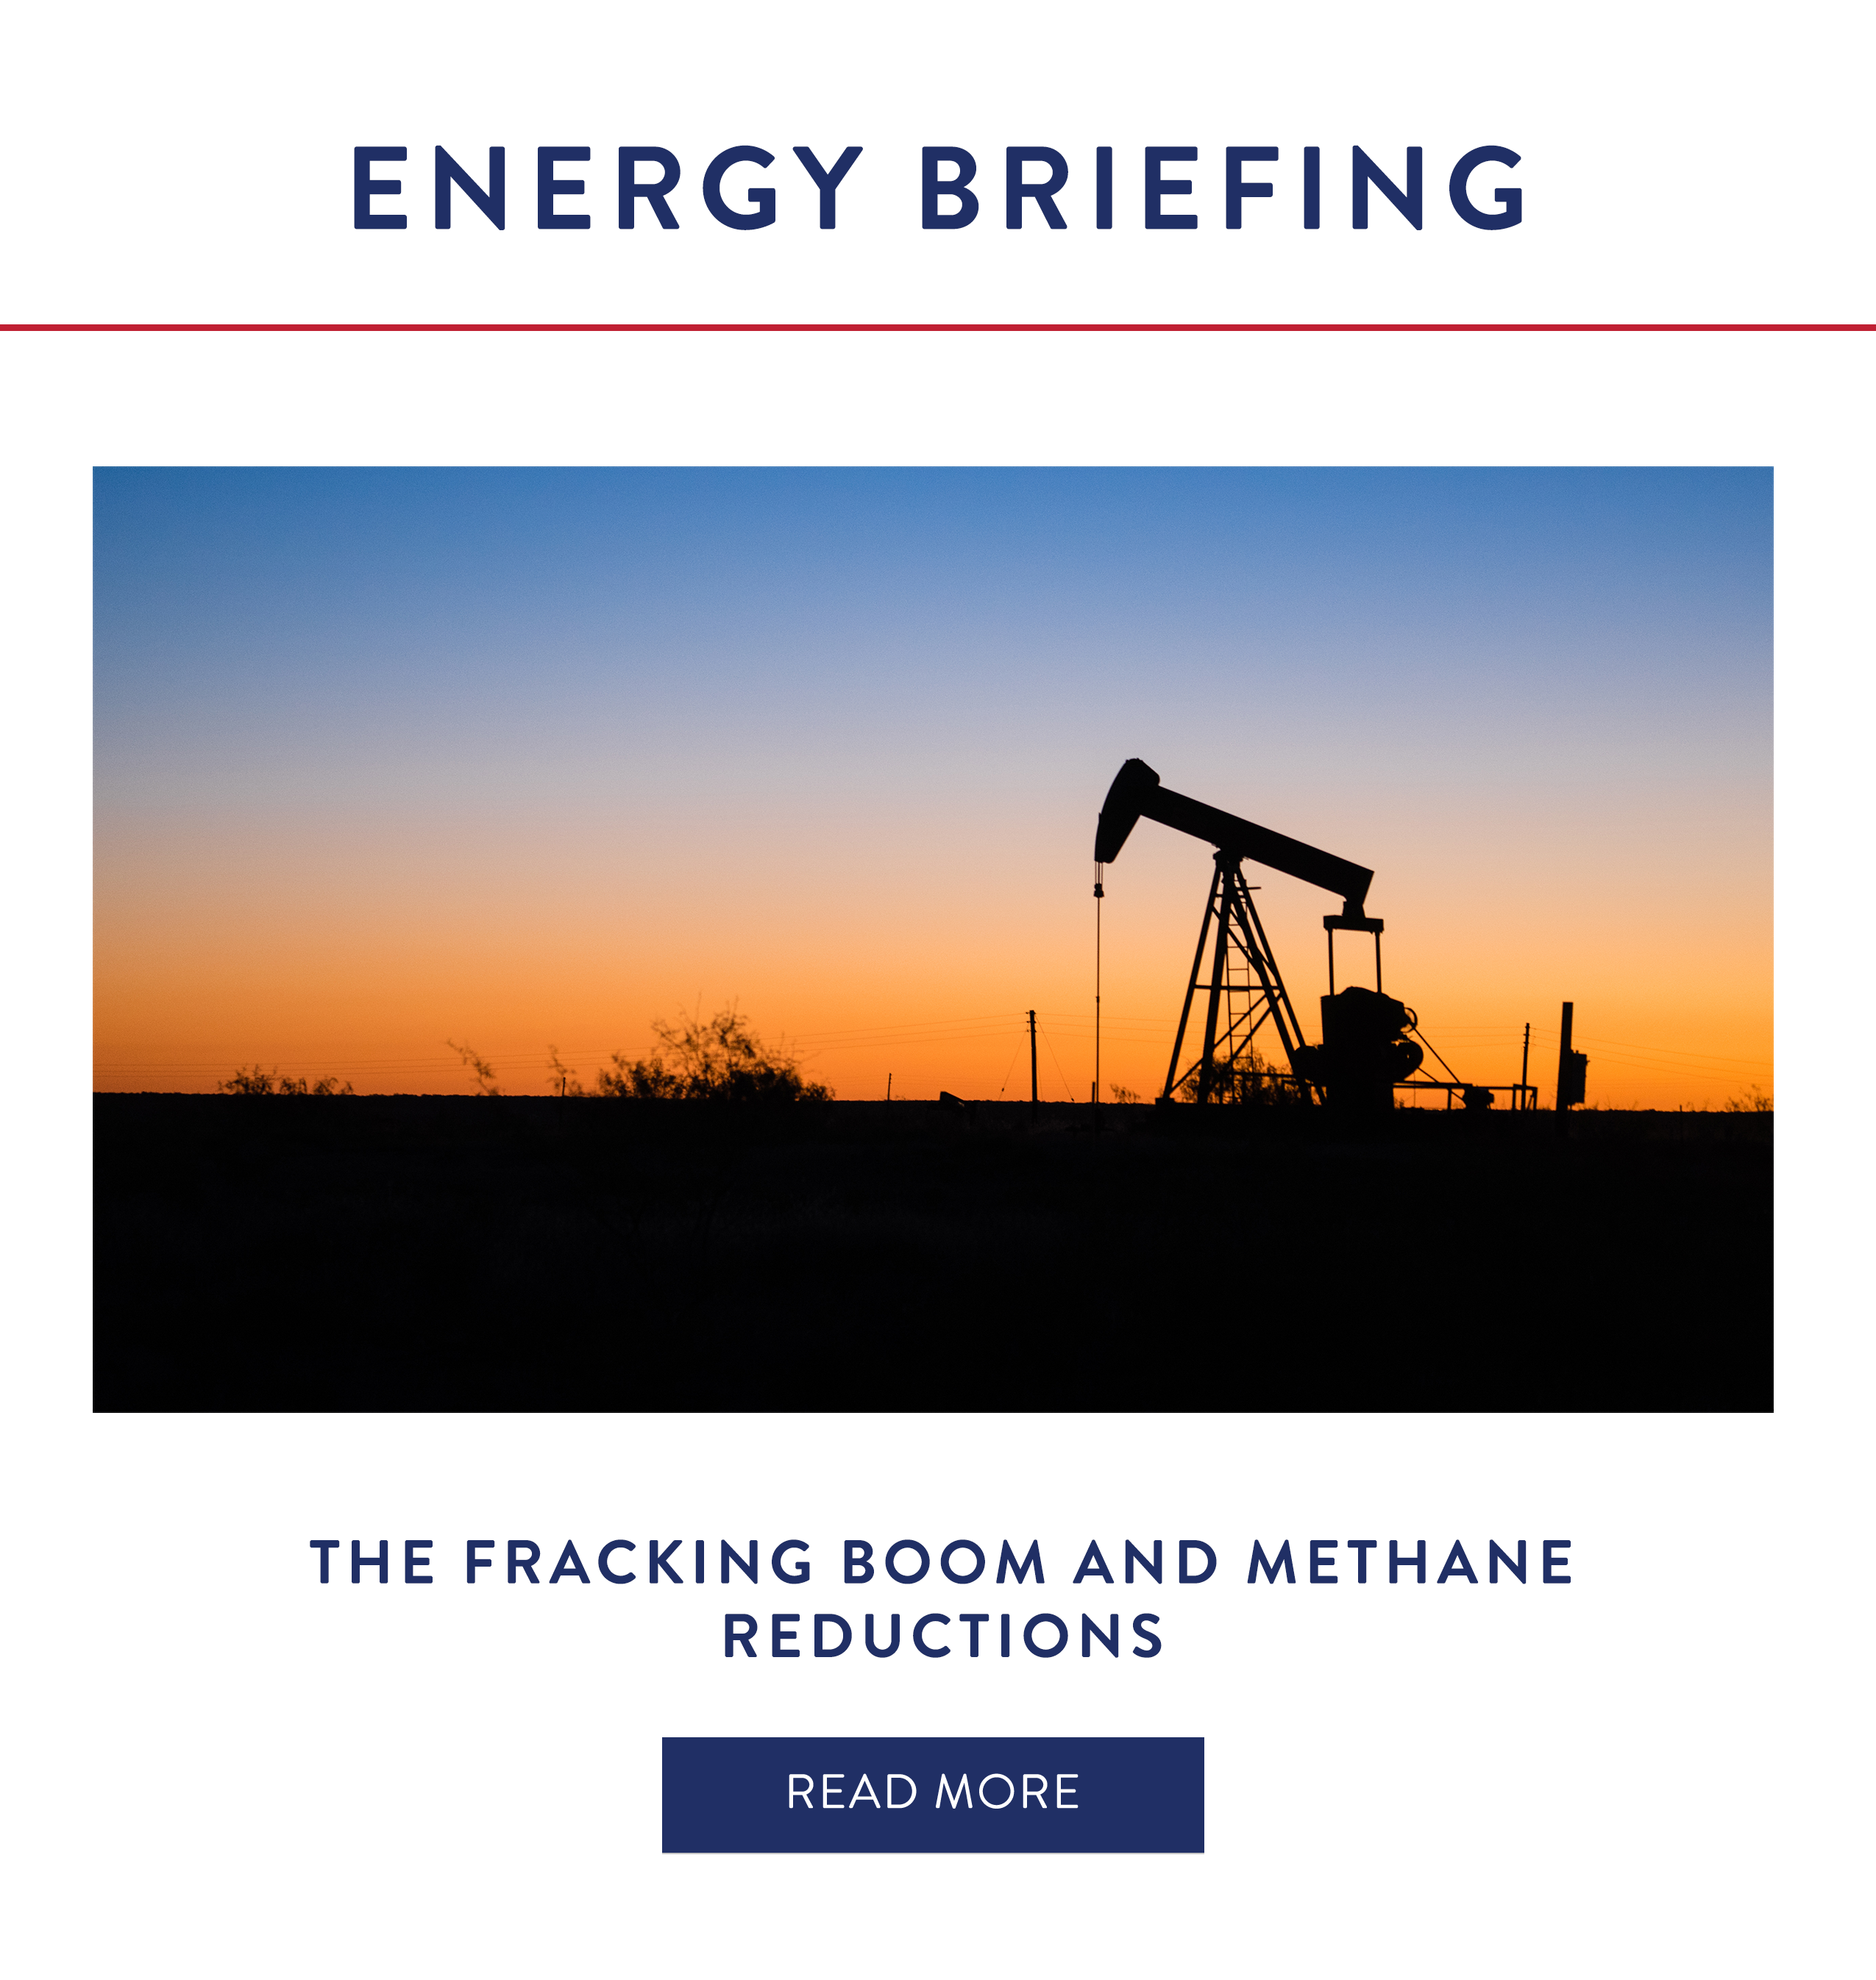 The Fracking Boom and Methane Reductions